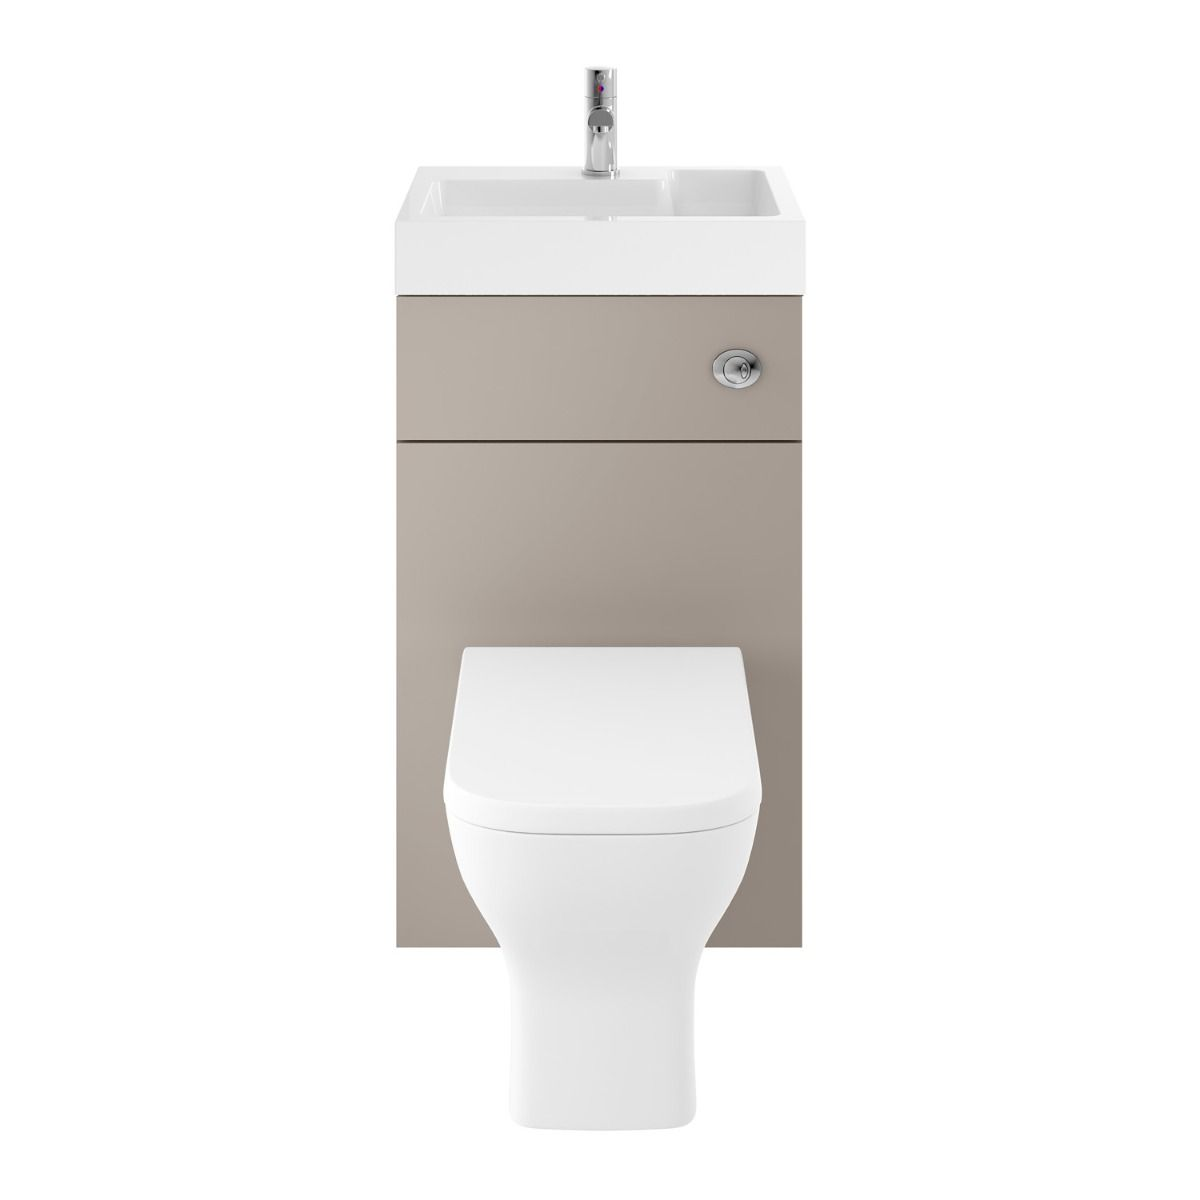 Stone Grey Toilet with Integrated Basin